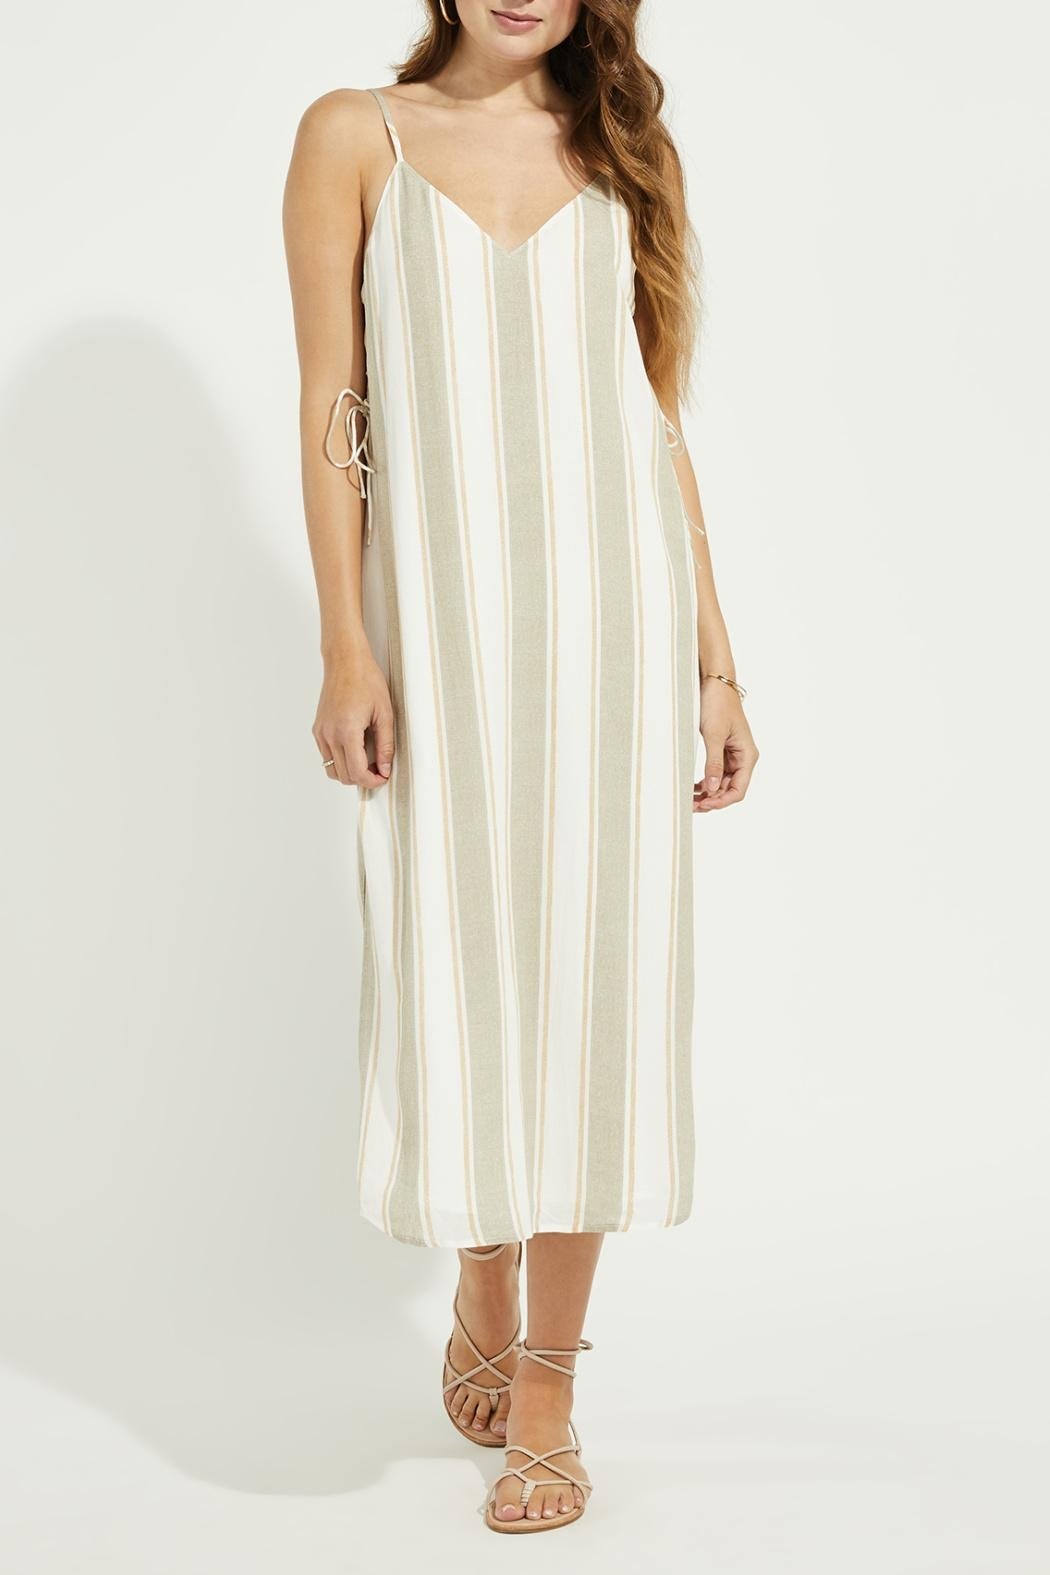 Gentle Fawn Side Lace Up Dress - Main Image